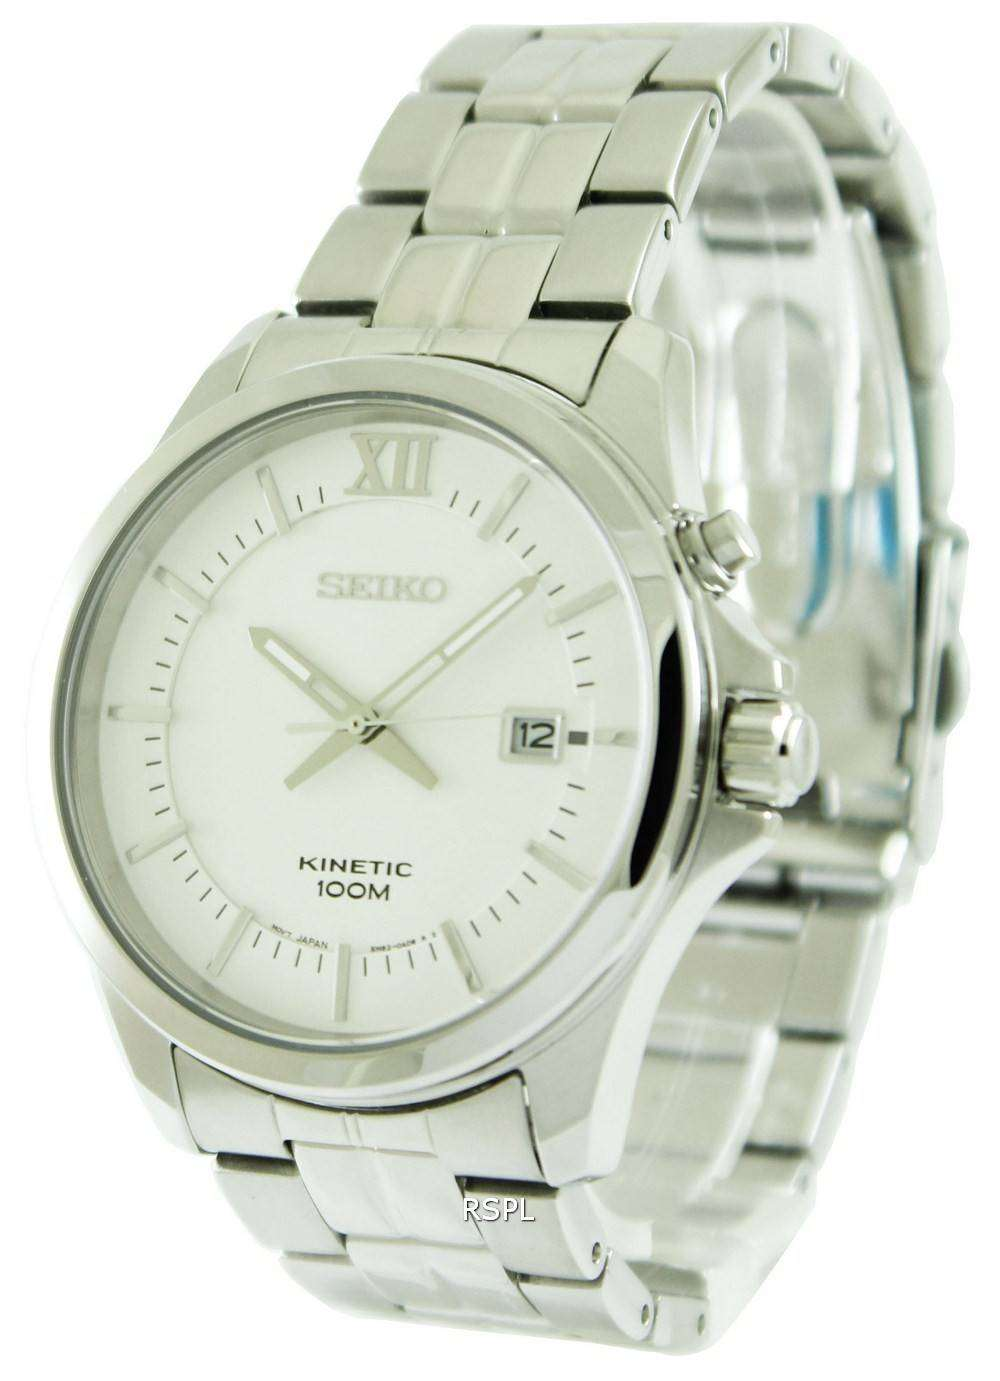 Seiko kinetic ska571p1 ska571p mens watch for Seiko kinetic watches